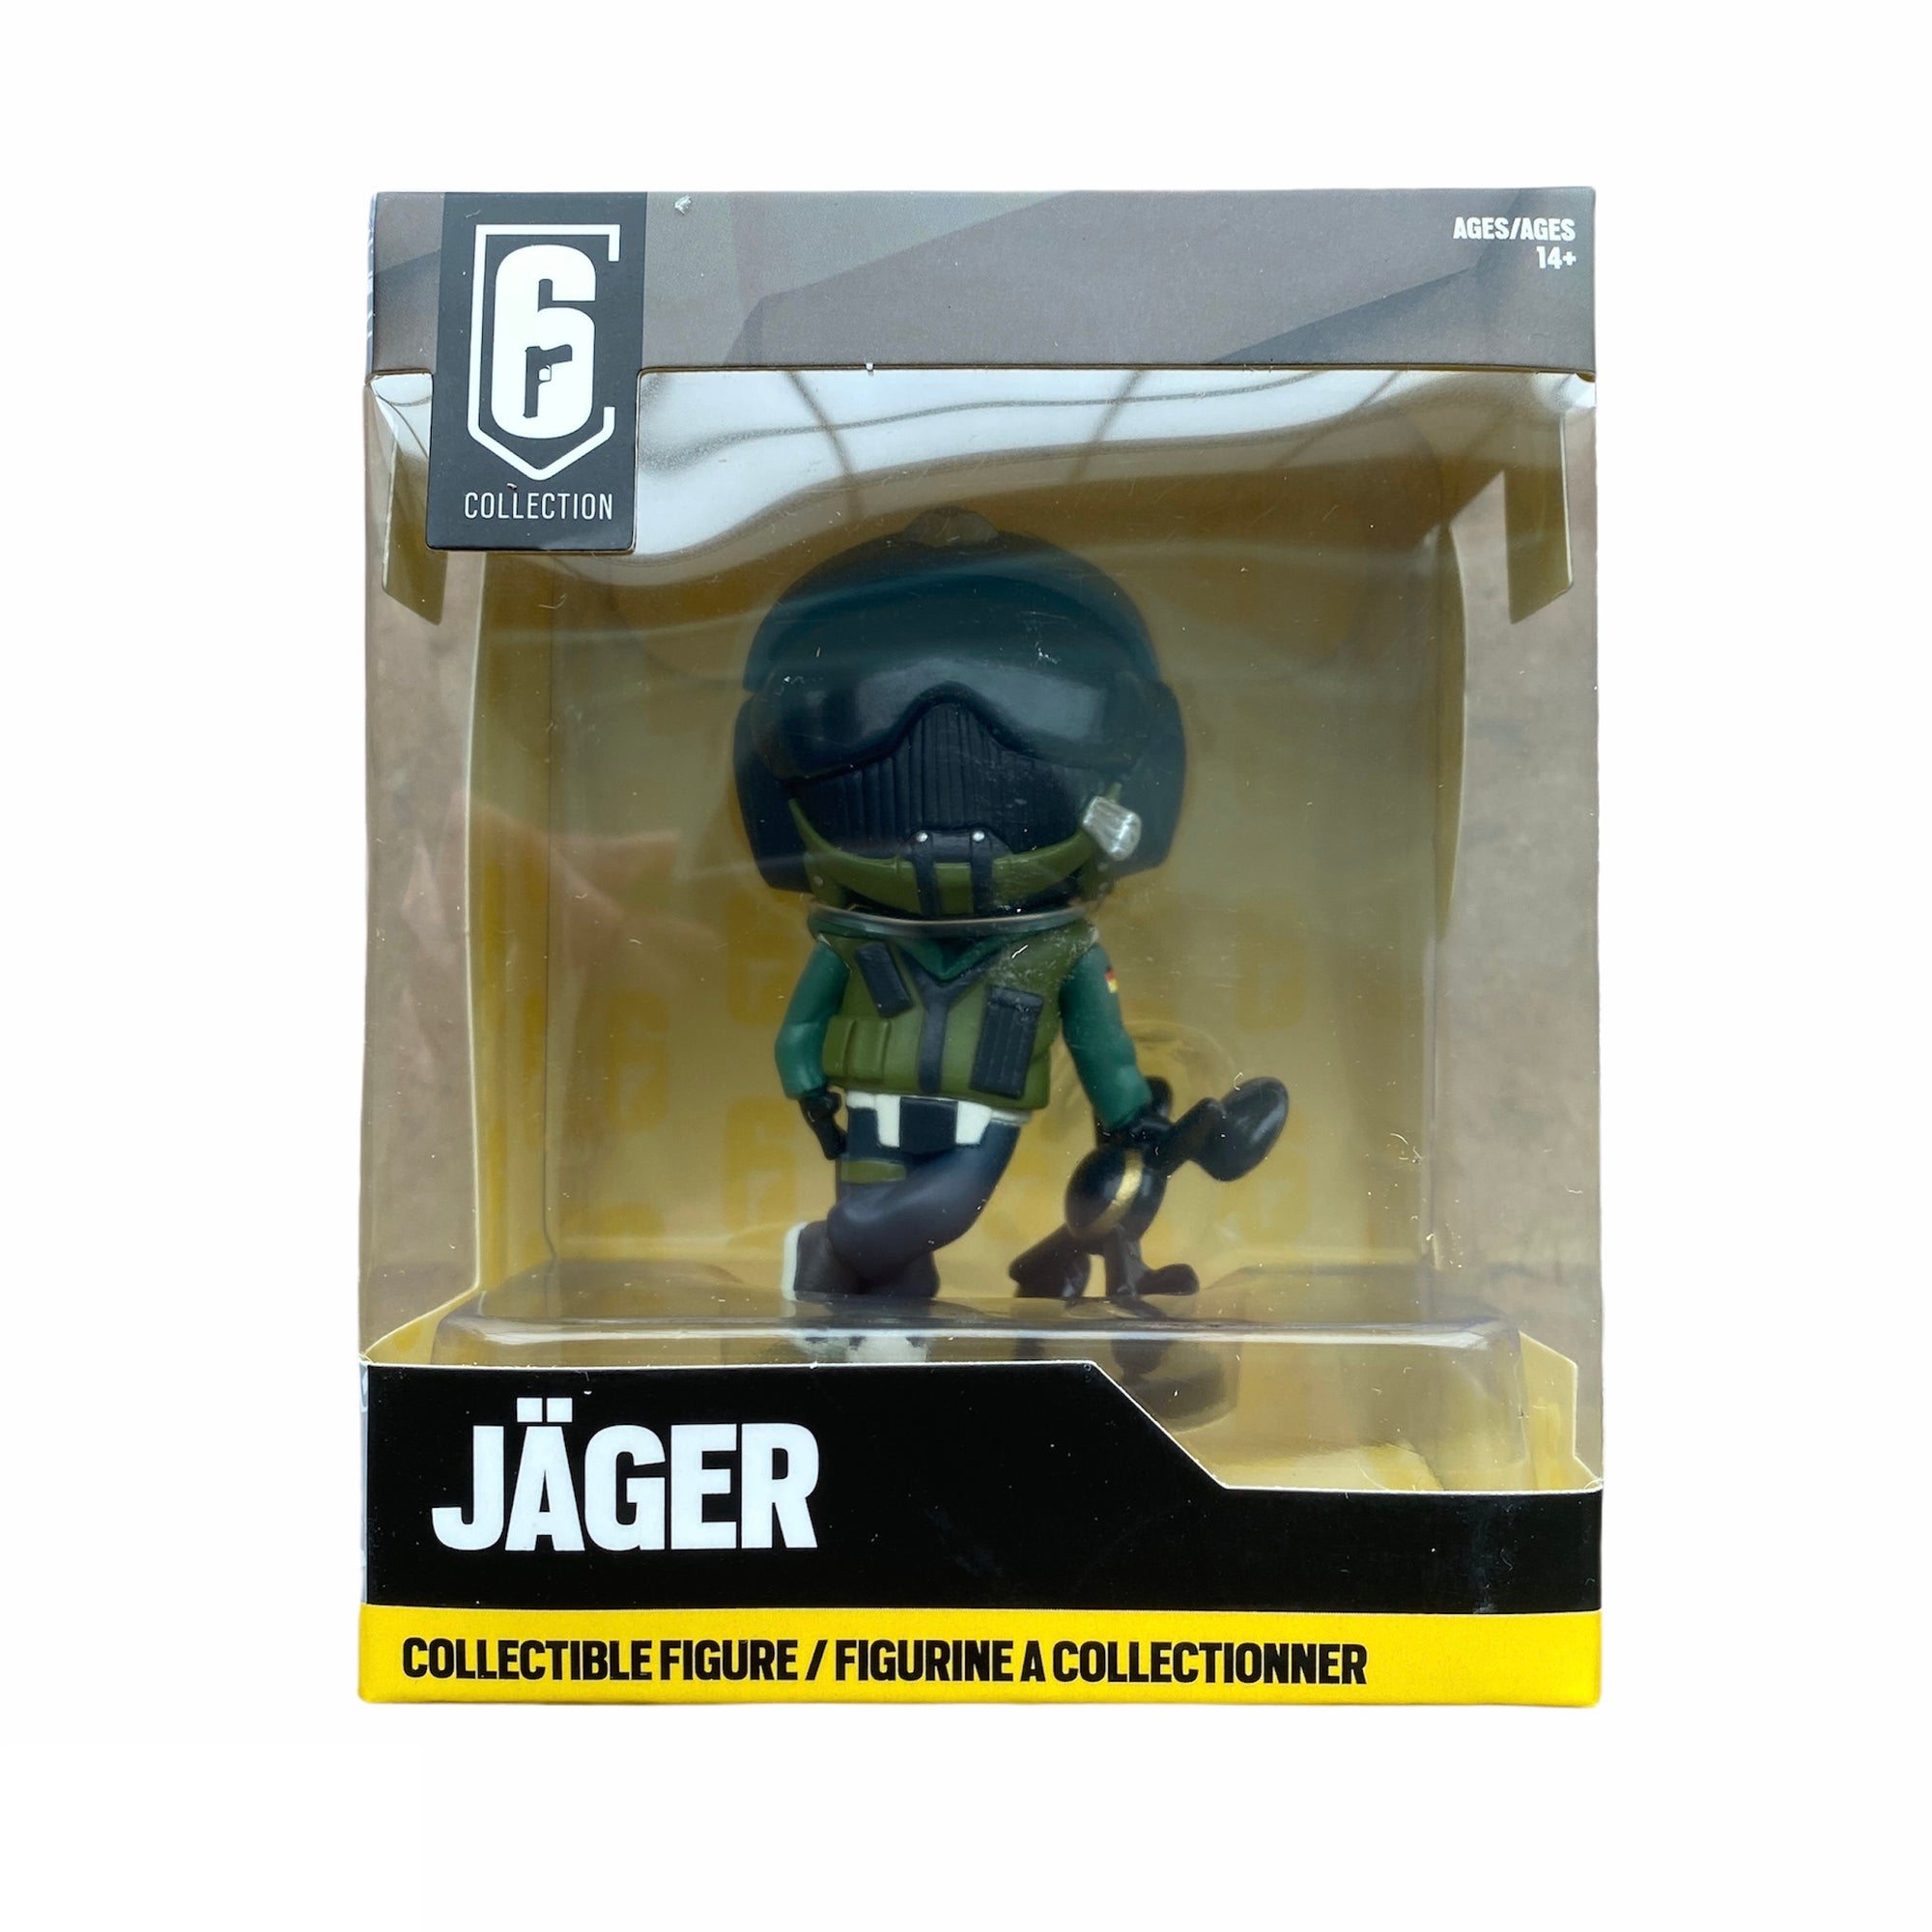 Rainbow Six Jager Chibi Series 1 Collection